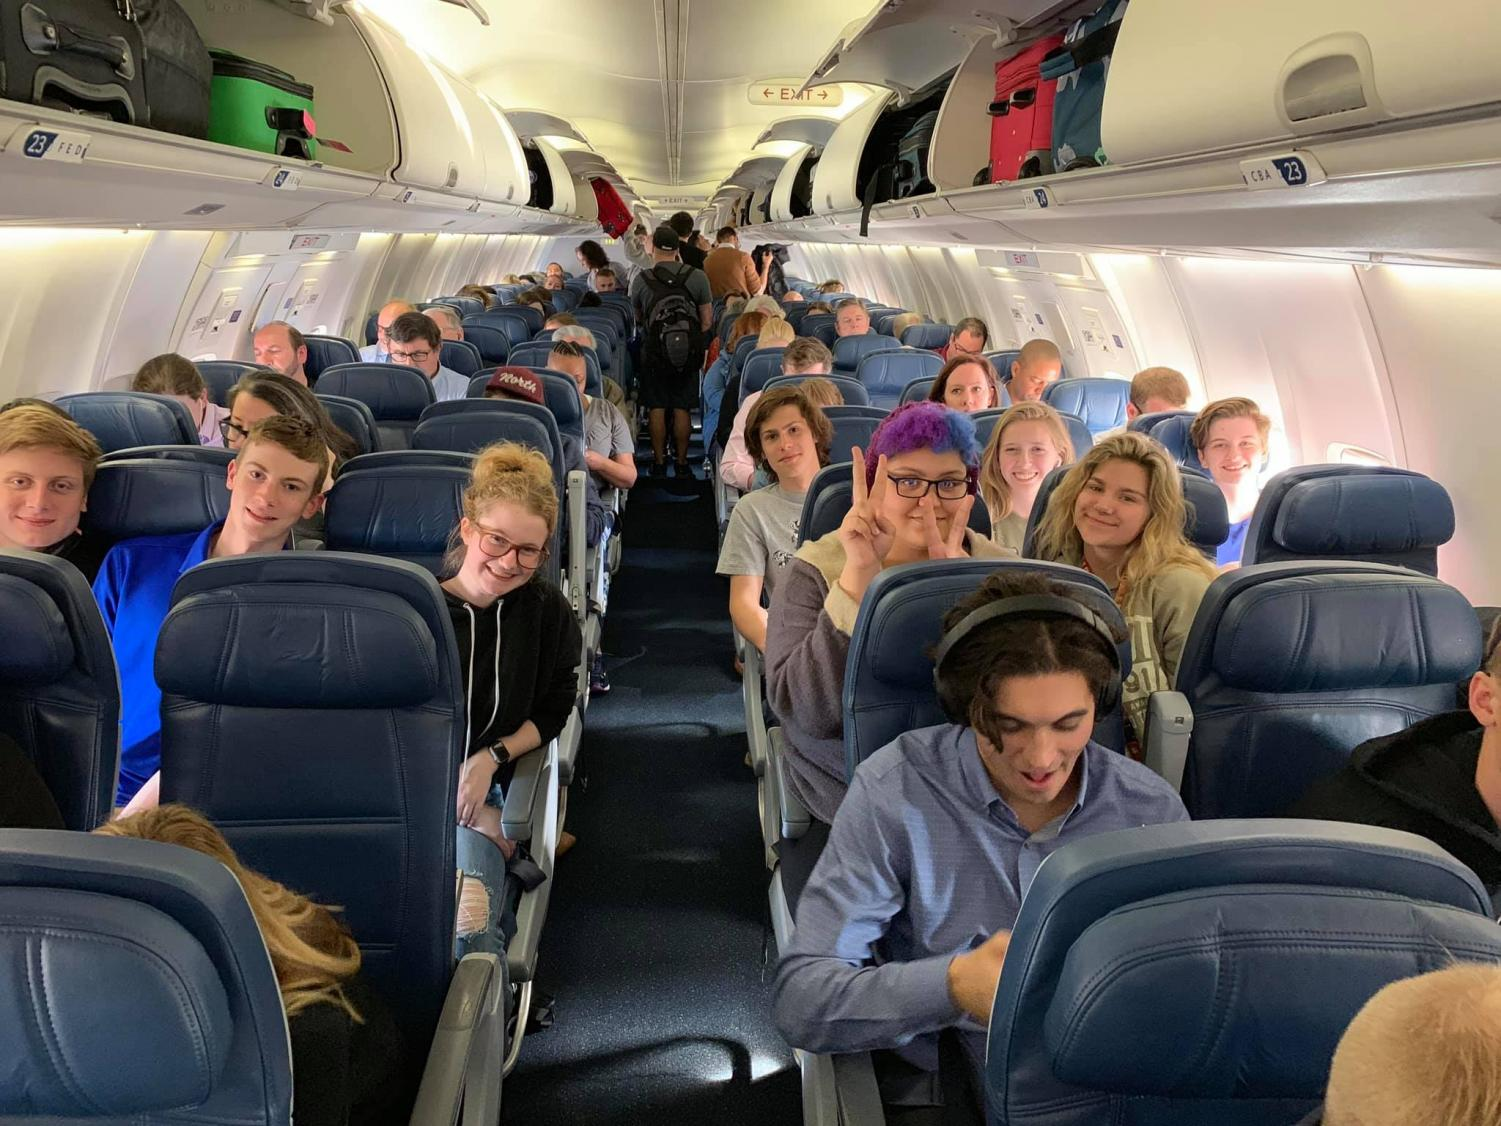 About+to+takeoff+for+Anaheim%2C+Cali.%2C+Pony+Express+students+find+their+seats+and+get+comfortable+for+their+four+hour+flight.